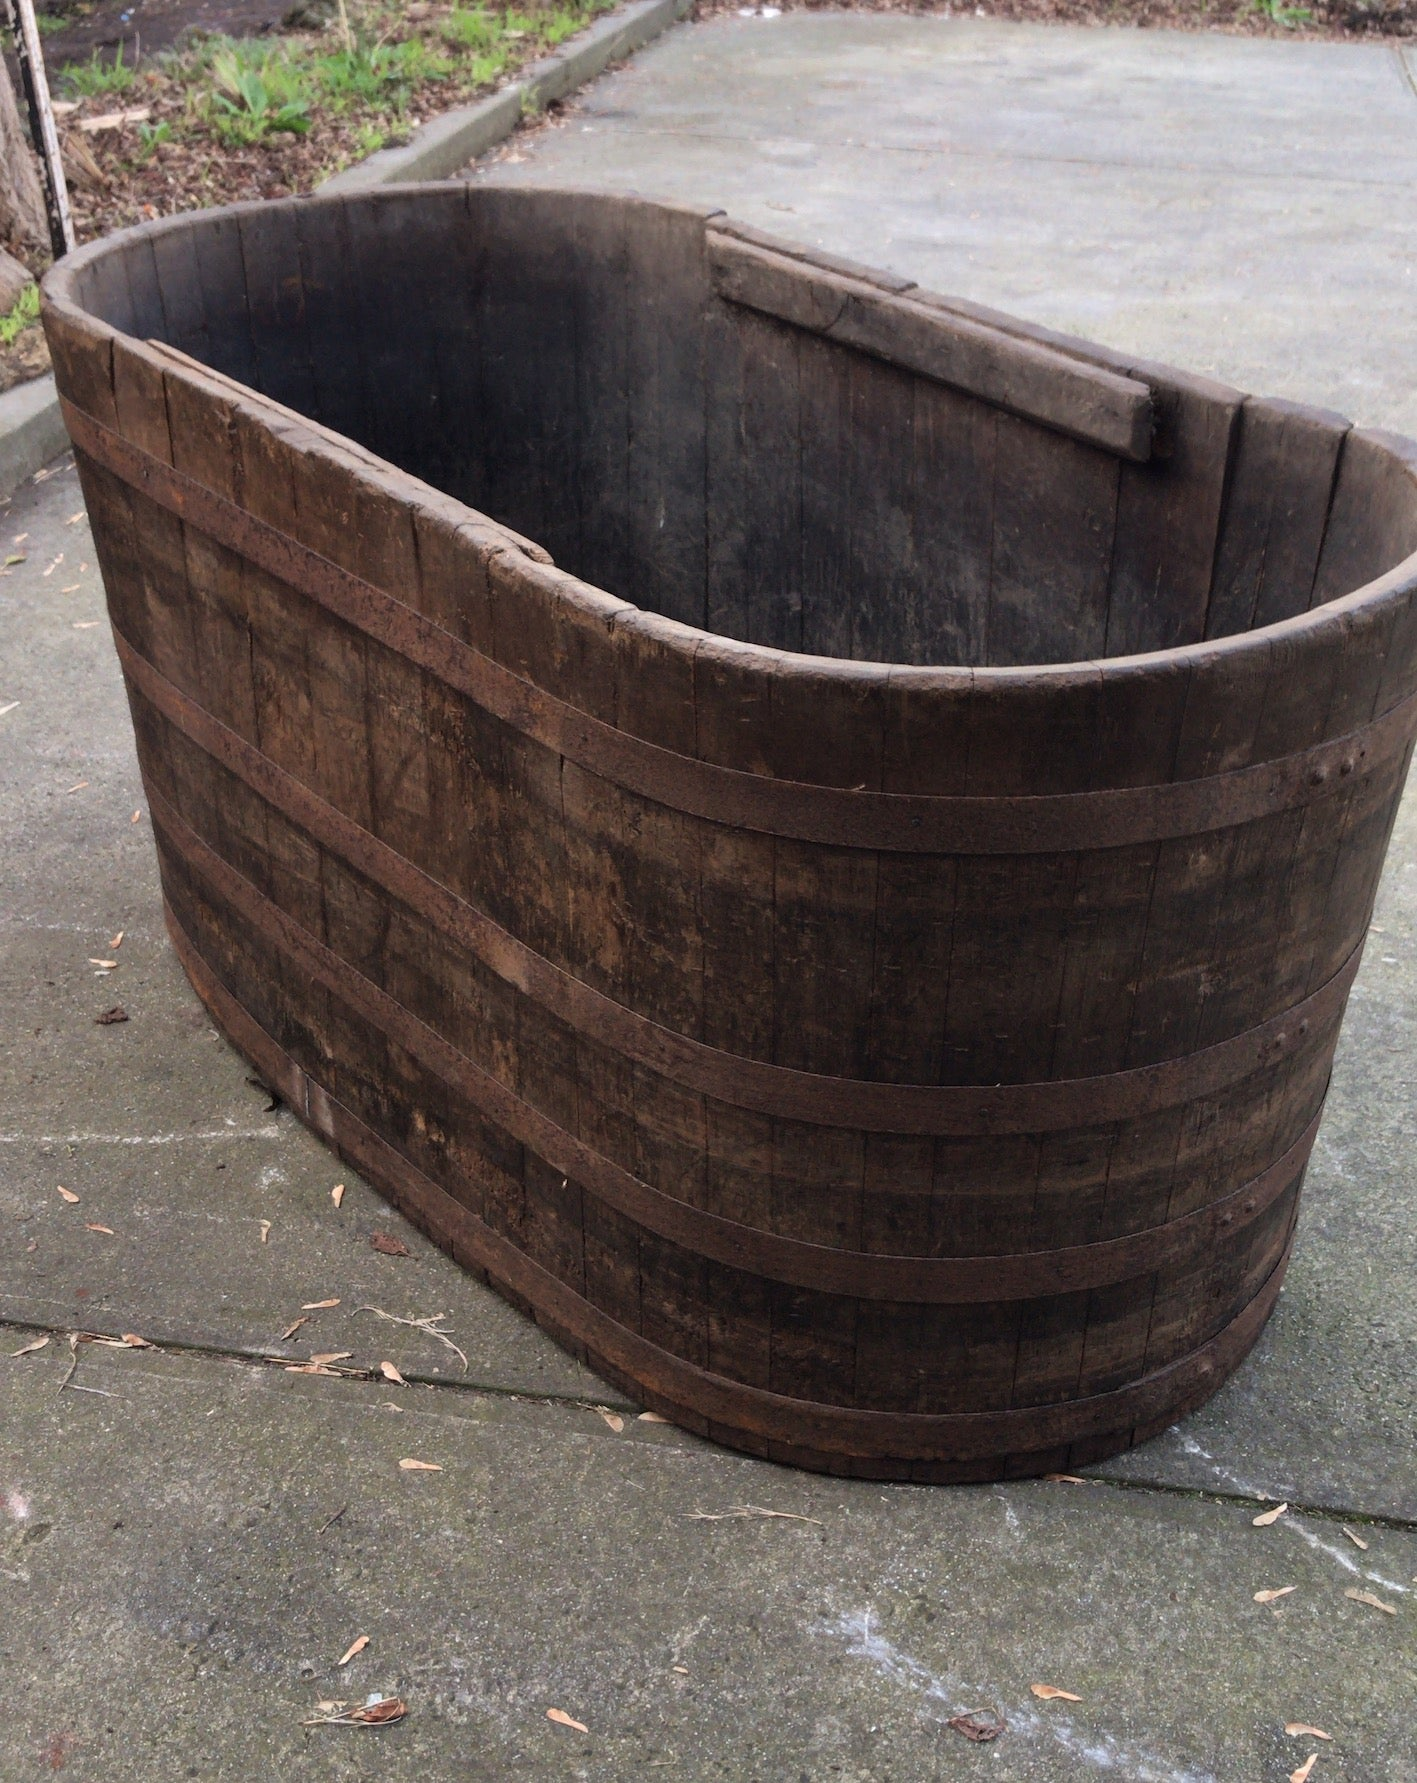 Vintage industrial French oak oval half wine barrel bath tub #2444